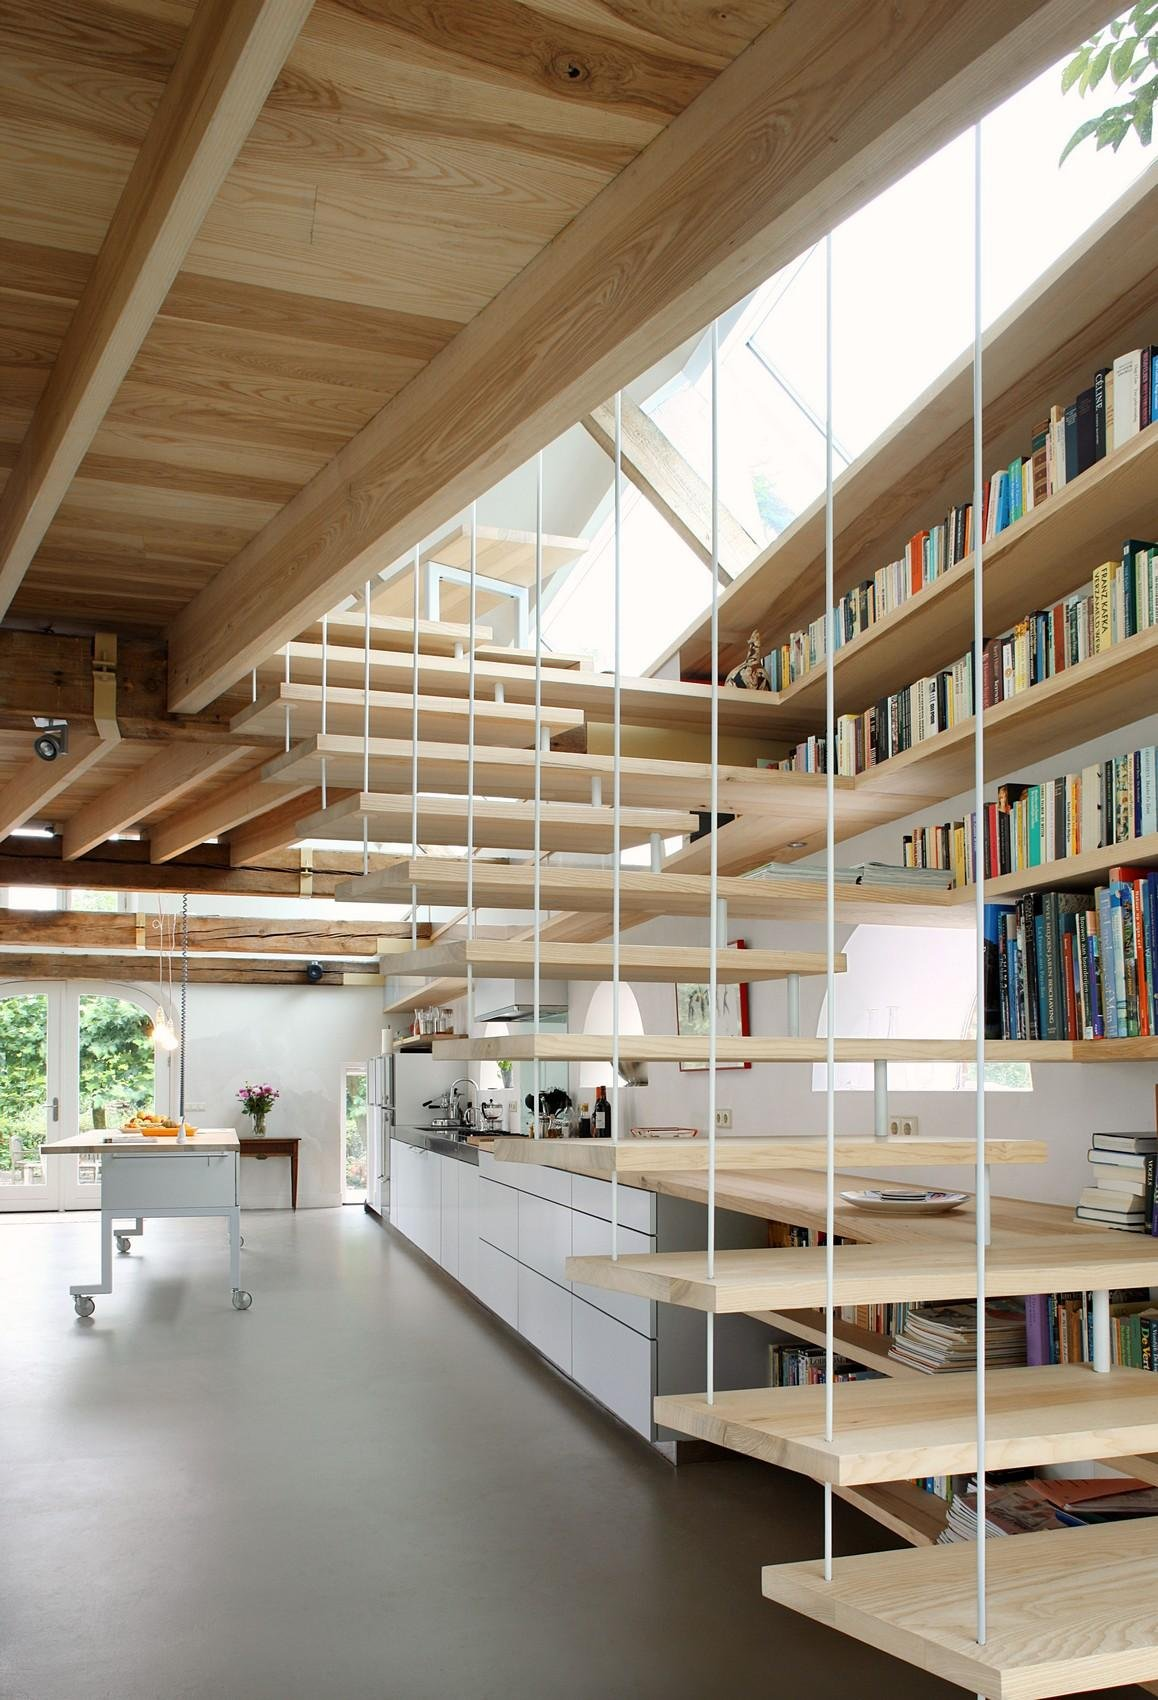 Floating Stairs, Barn Conversion in Geldermalsen, The Netherlands